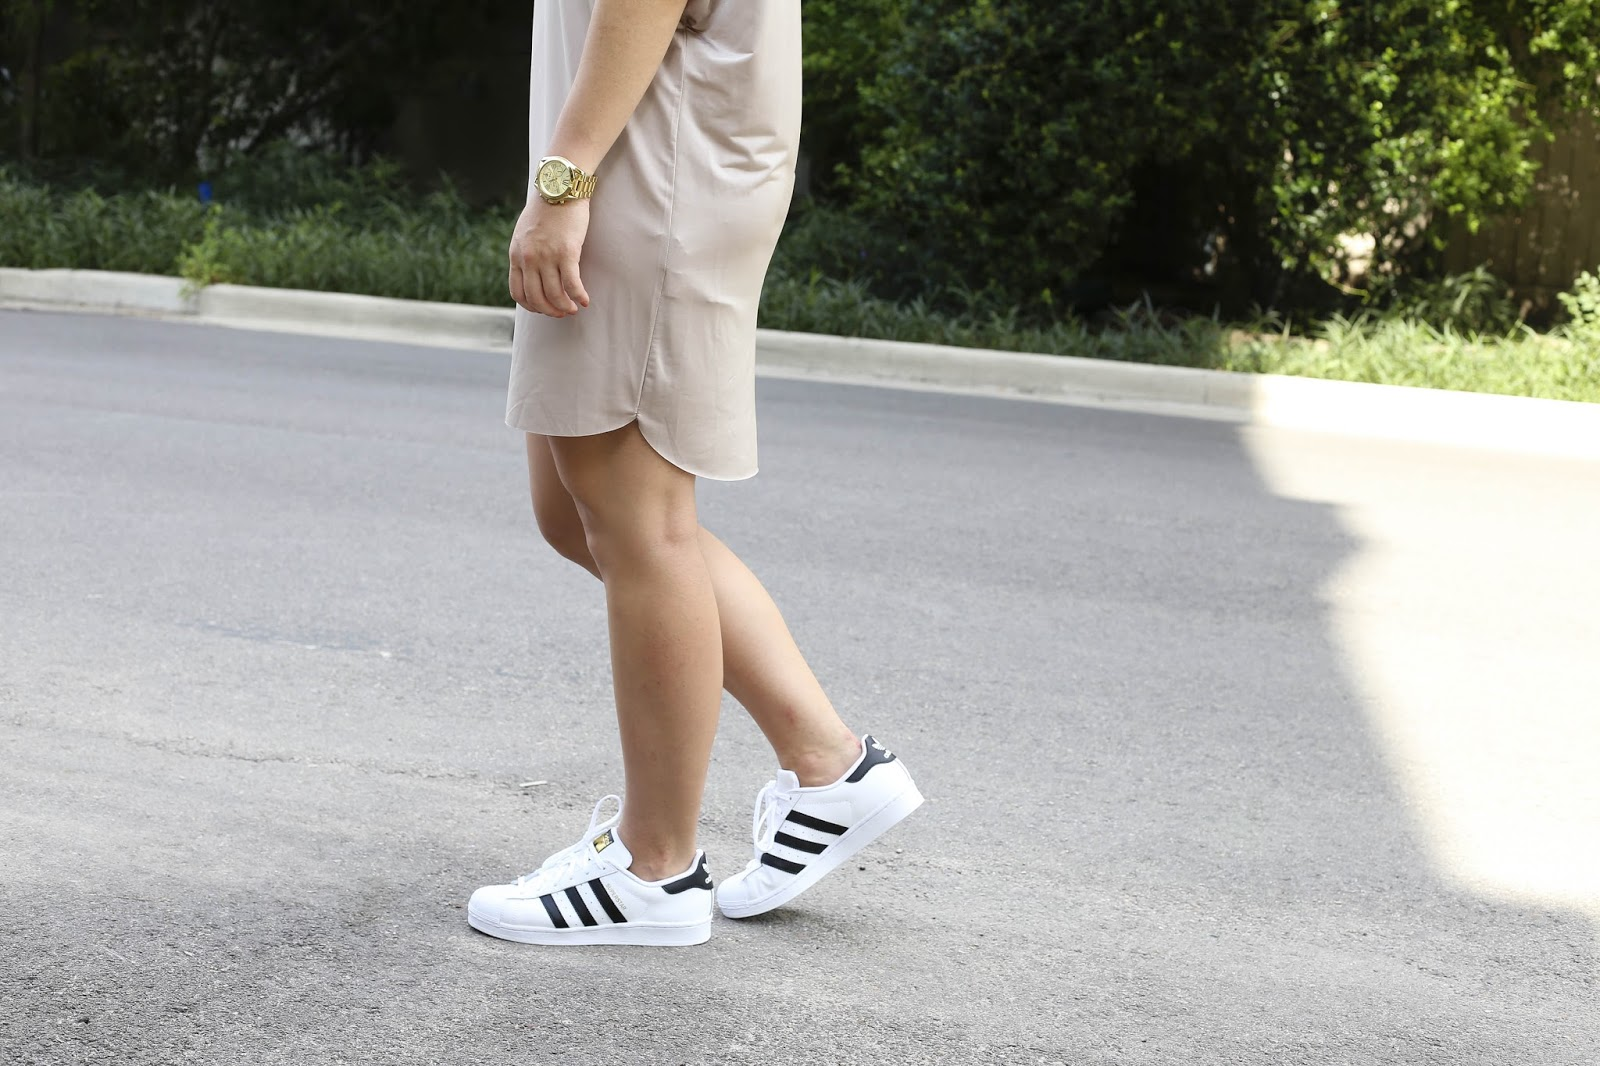 Adidas Superstar with dress